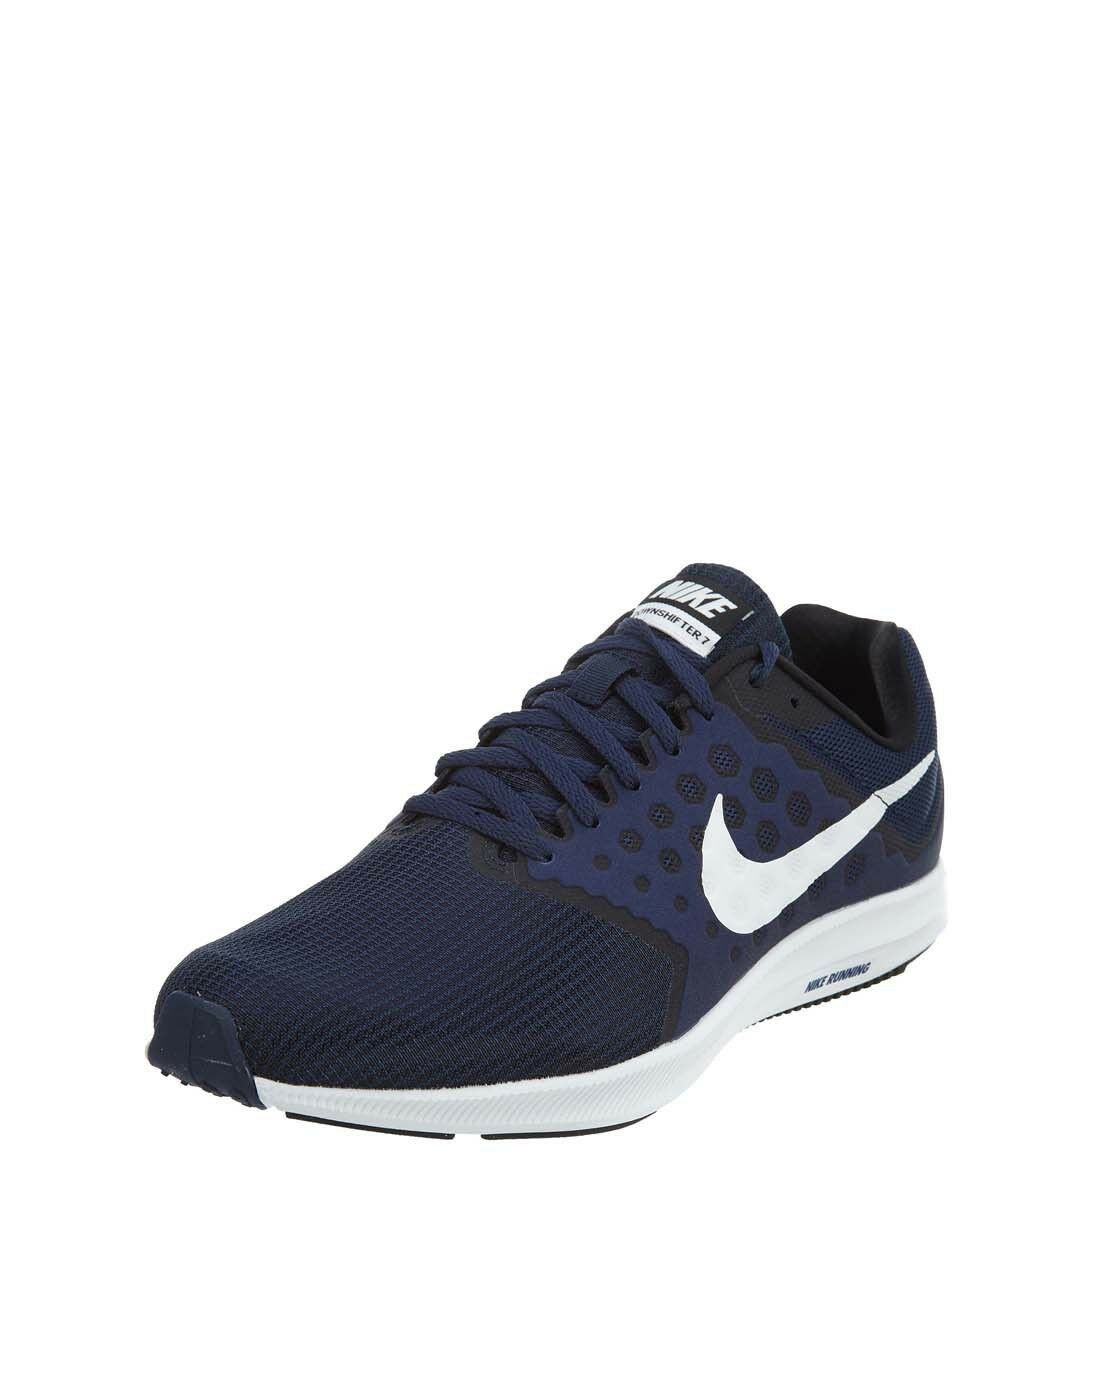 Nike Mens Downshifter 7 Running Sneakers 852460-400 Size 9.5